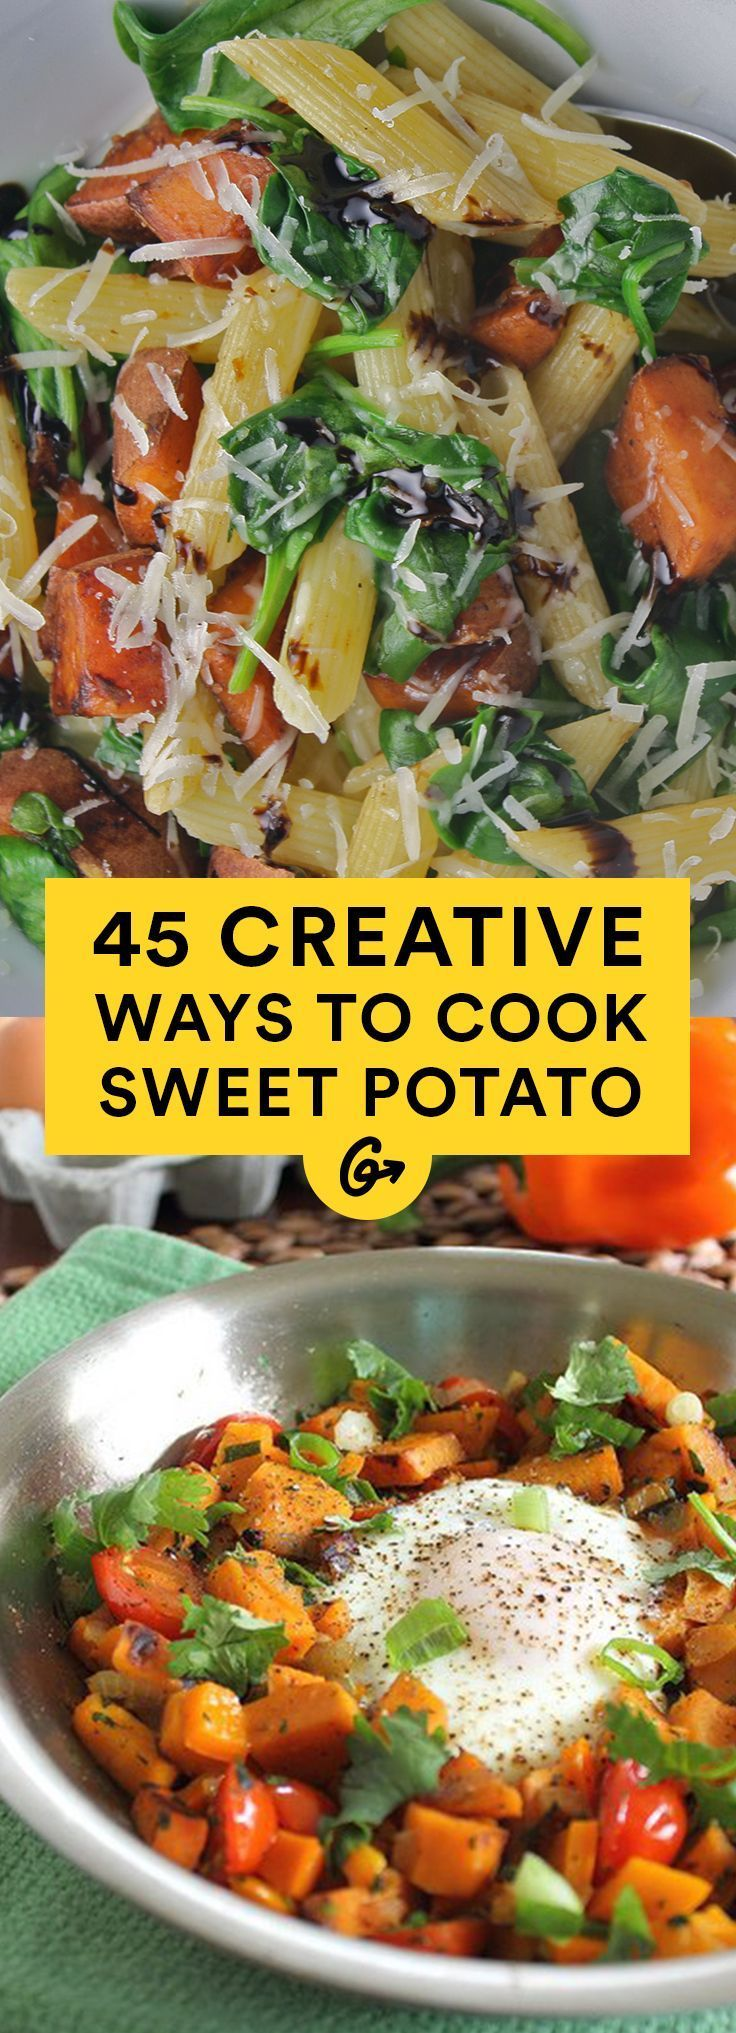 45 creative ways to cook sweet potato vegetarian recipes vegan kochen gesundes essen nahrung. Black Bedroom Furniture Sets. Home Design Ideas